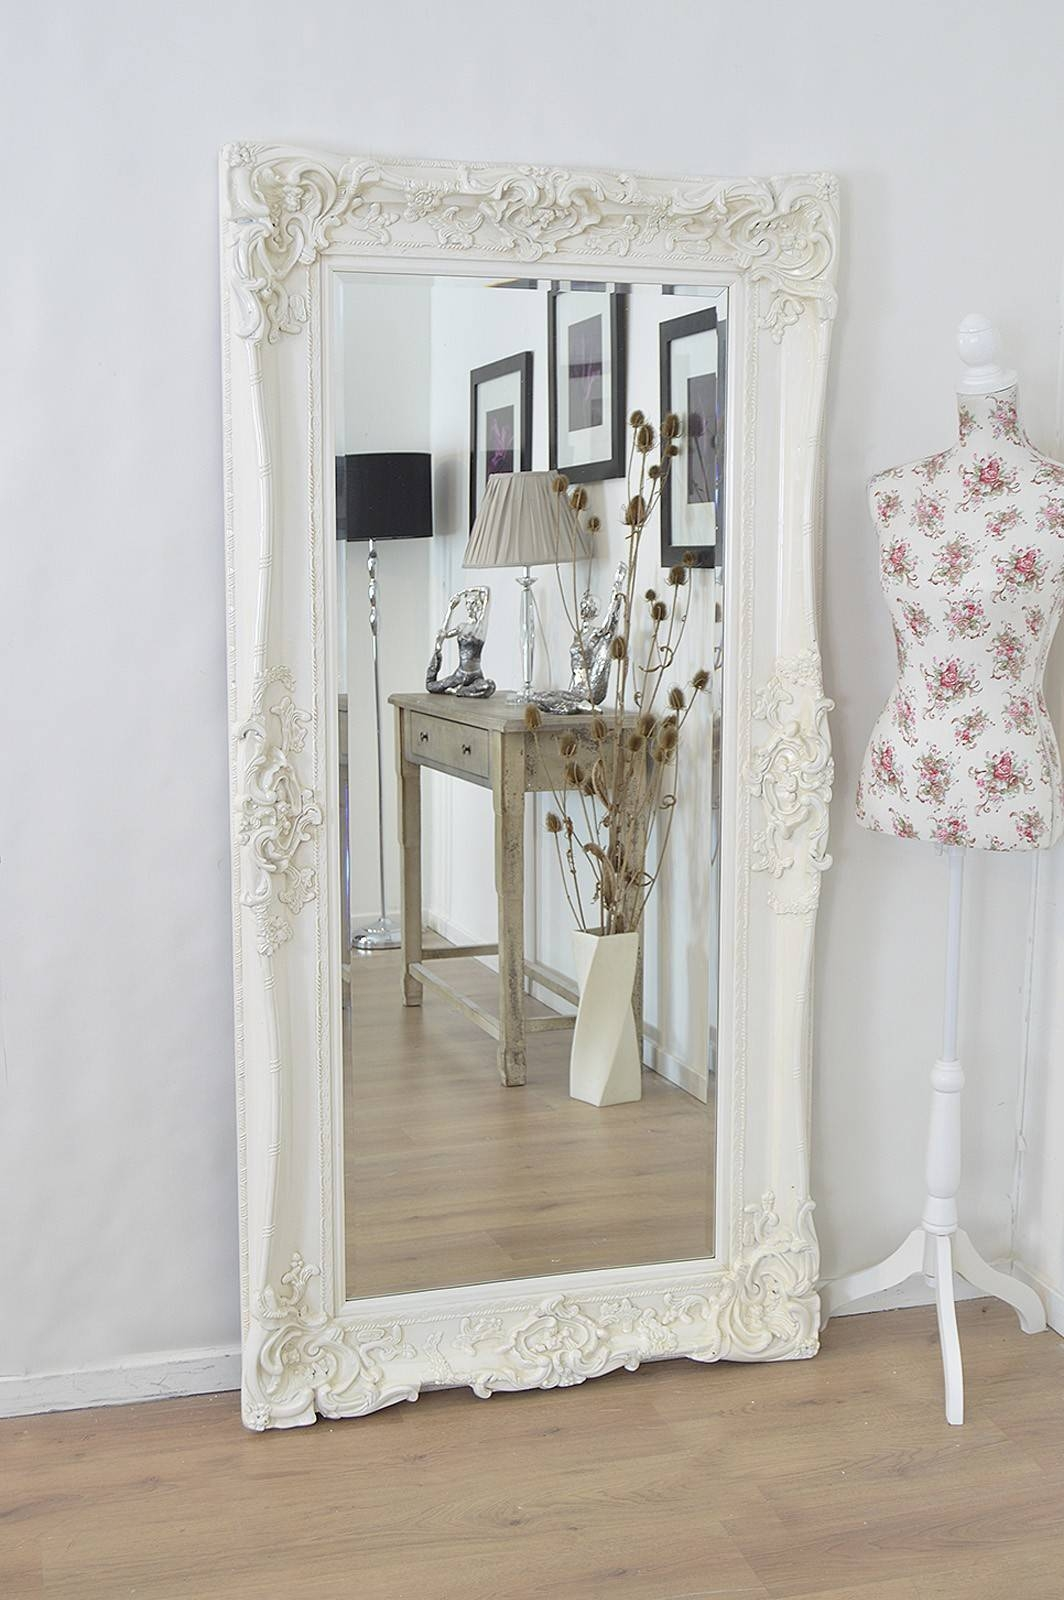 Amazing Shabby Chic Wall Mirror Shop Large Grey Satin Shabby within Shabby Chic Free Standing Mirrors (Image 4 of 15)